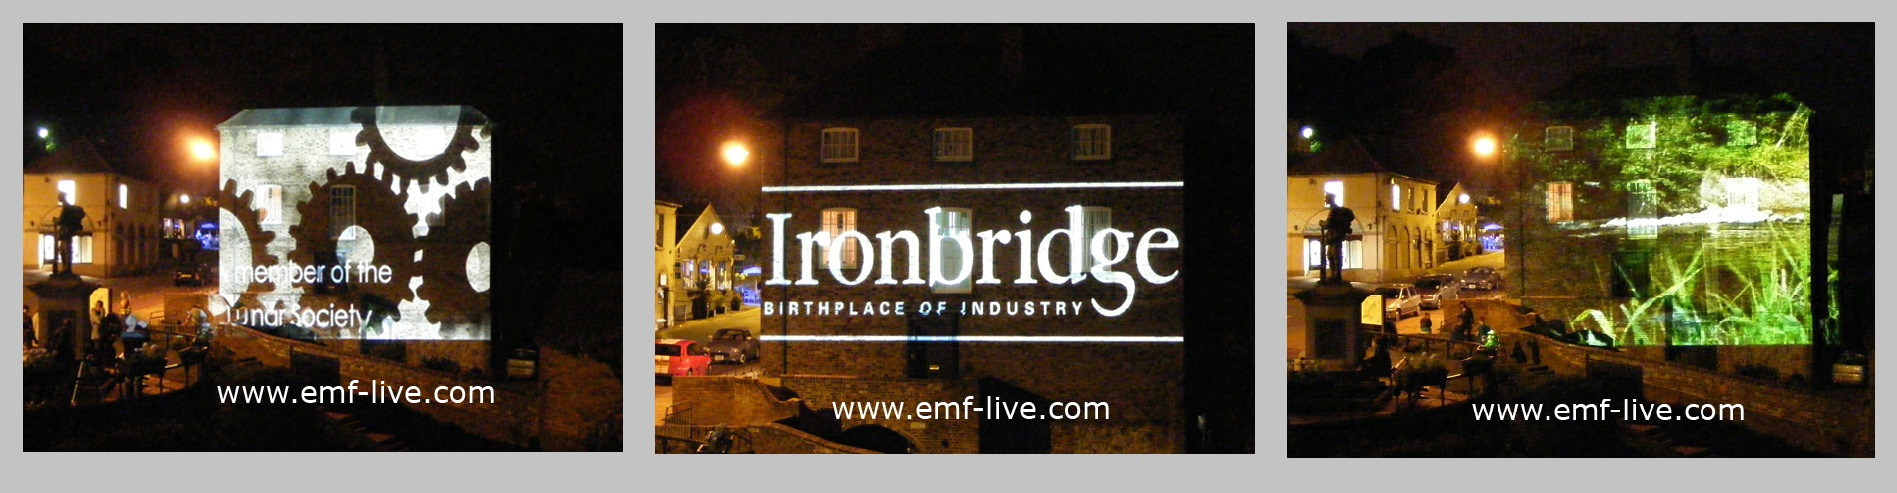 Ironbridge Festival world heritage projections